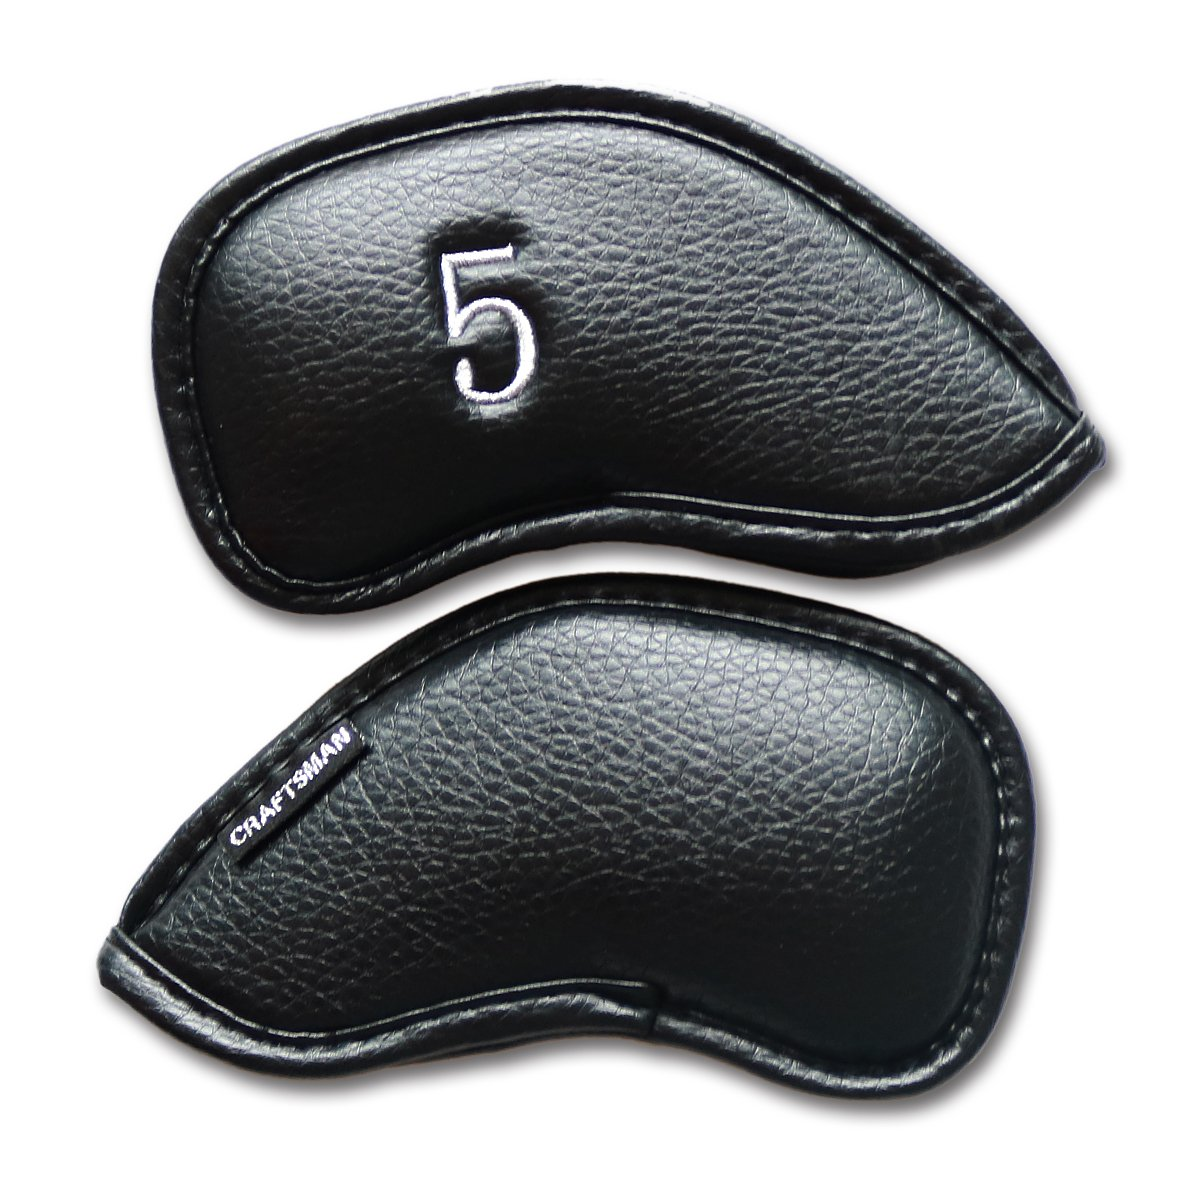 Craftsman Golf #3 #4 #5 #6 #7 #8 #9 AW SW PW LW Iron Headcovers Head Covers (#5) by Craftsman Golf